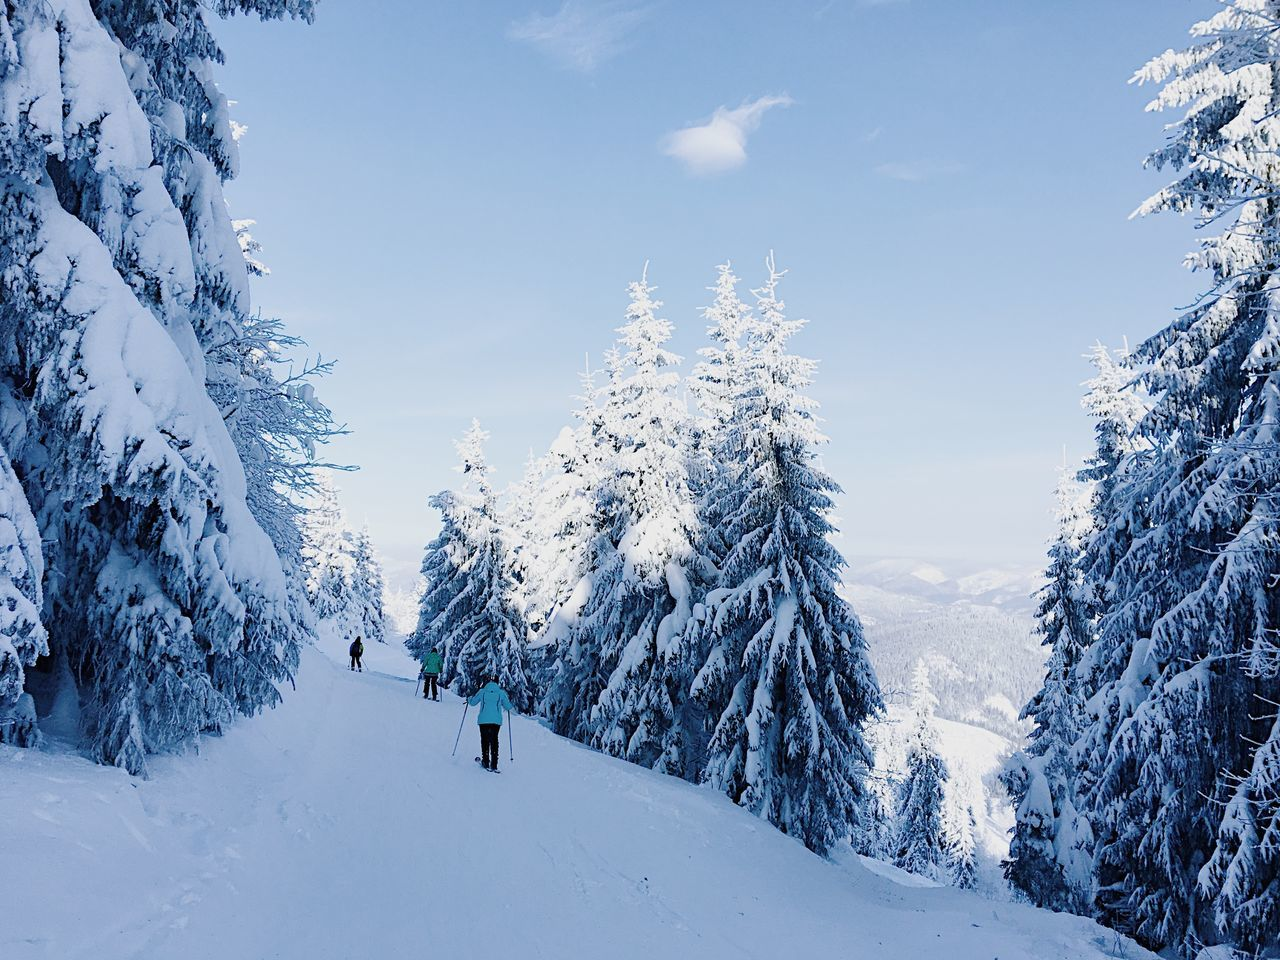 Adult Adults Only Beauty In Nature Cold Temperature Day Forest Landscape Mountain Nature Only Men Outdoors People Scenics Sky Snow Snowboarding Tree Winter